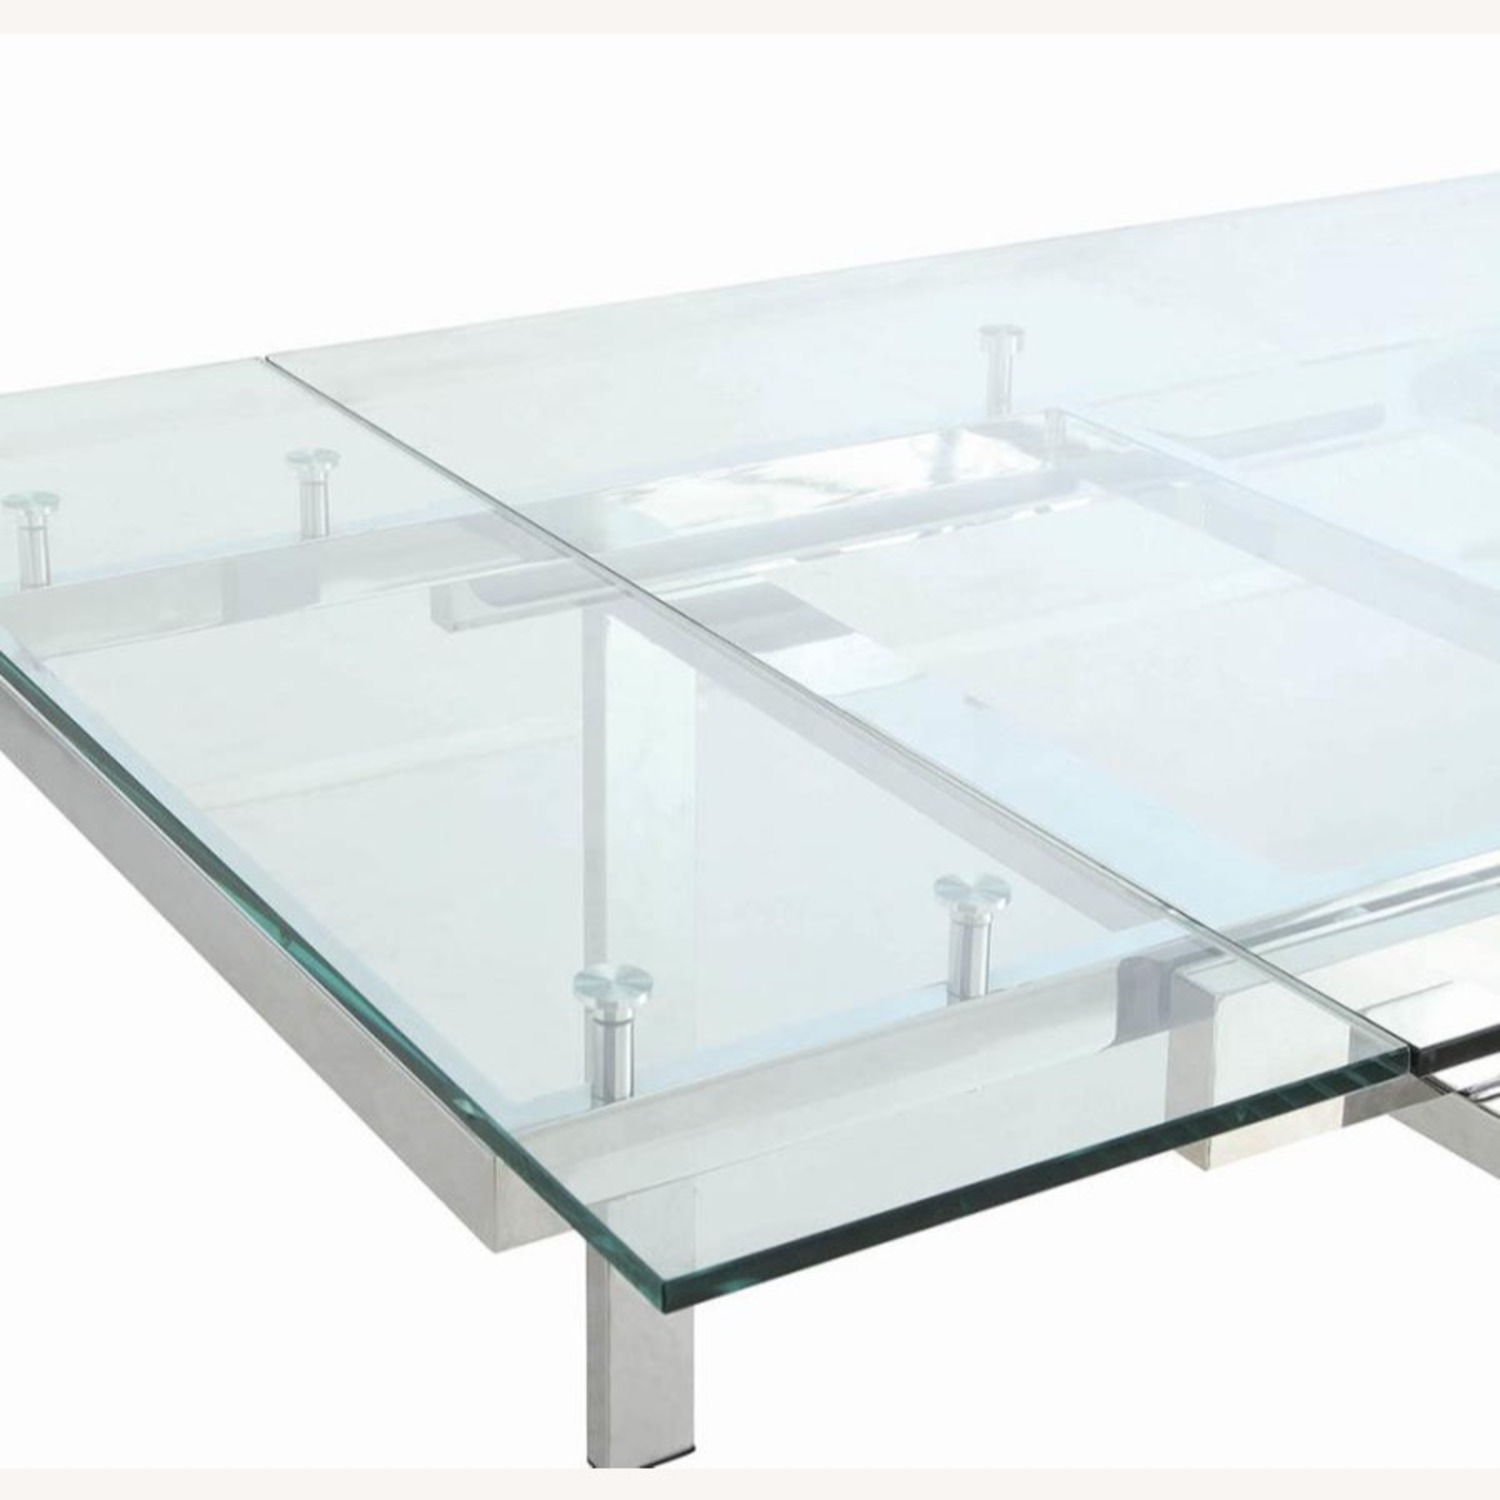 Modern Dining Table Polished In Chrome Finish - image-2